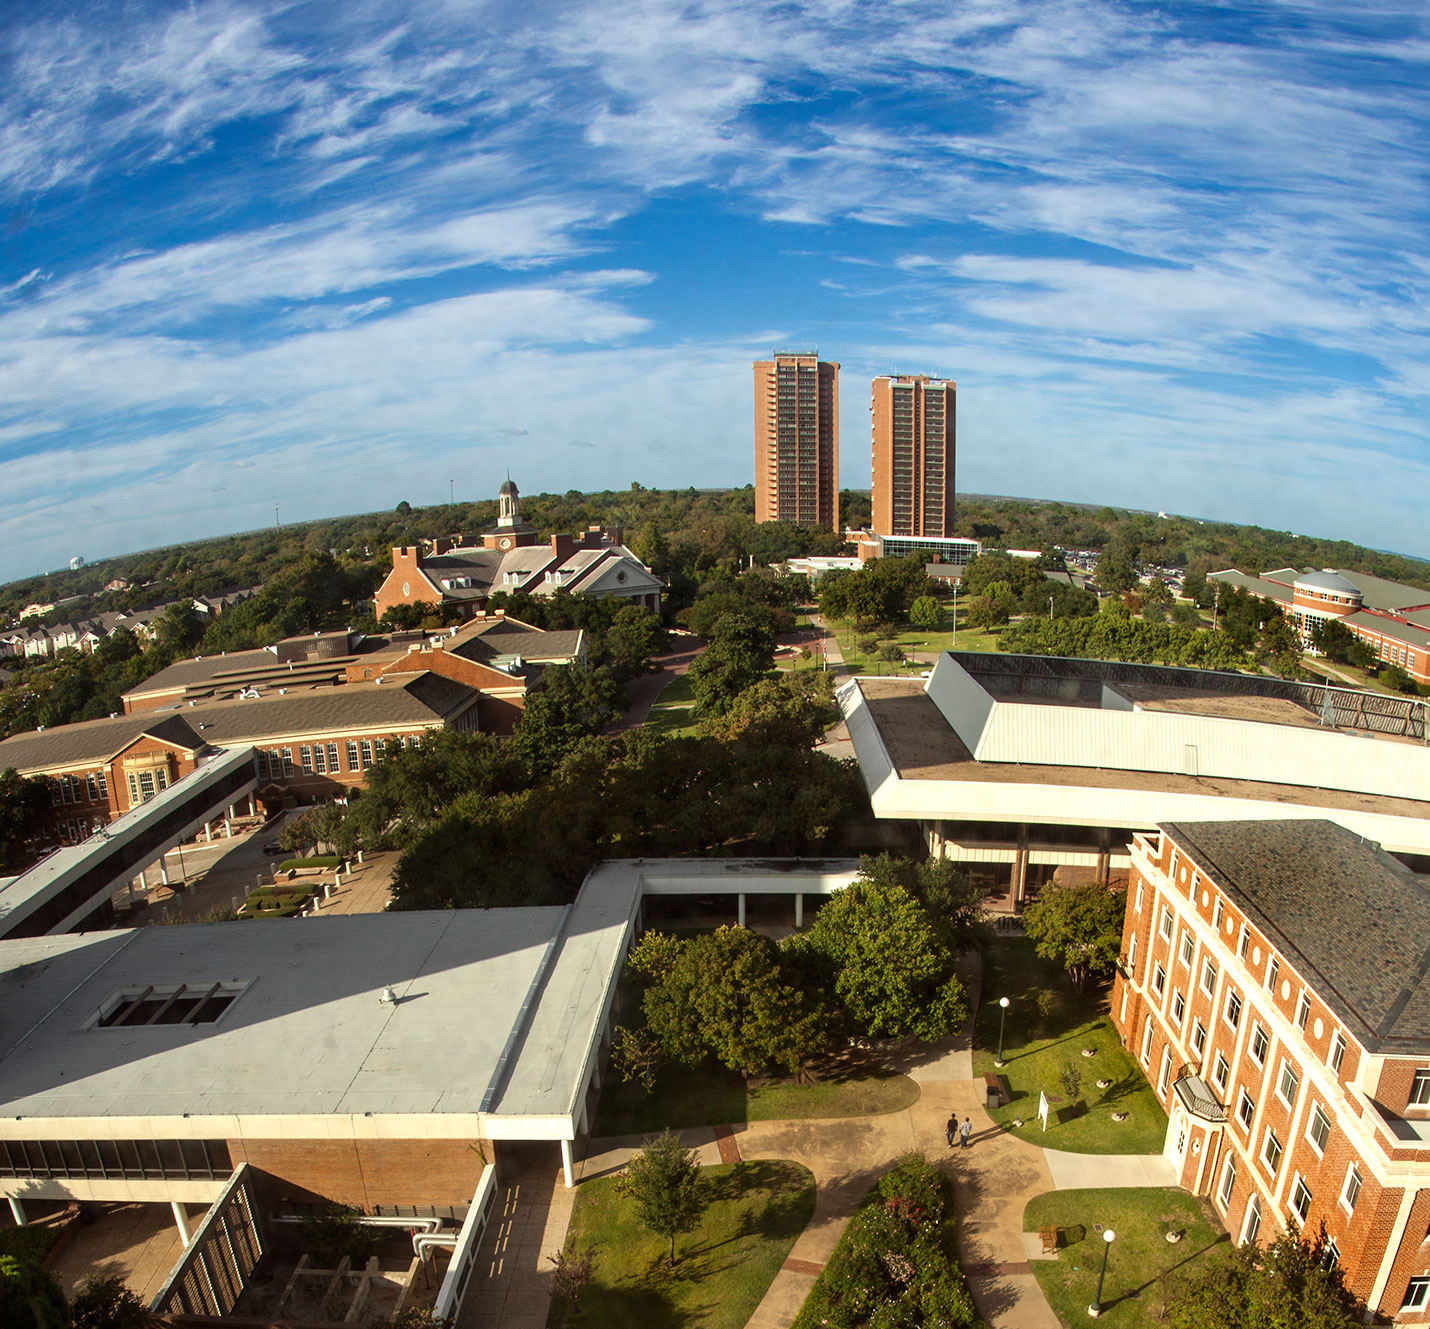 Picture of the Denton campus.